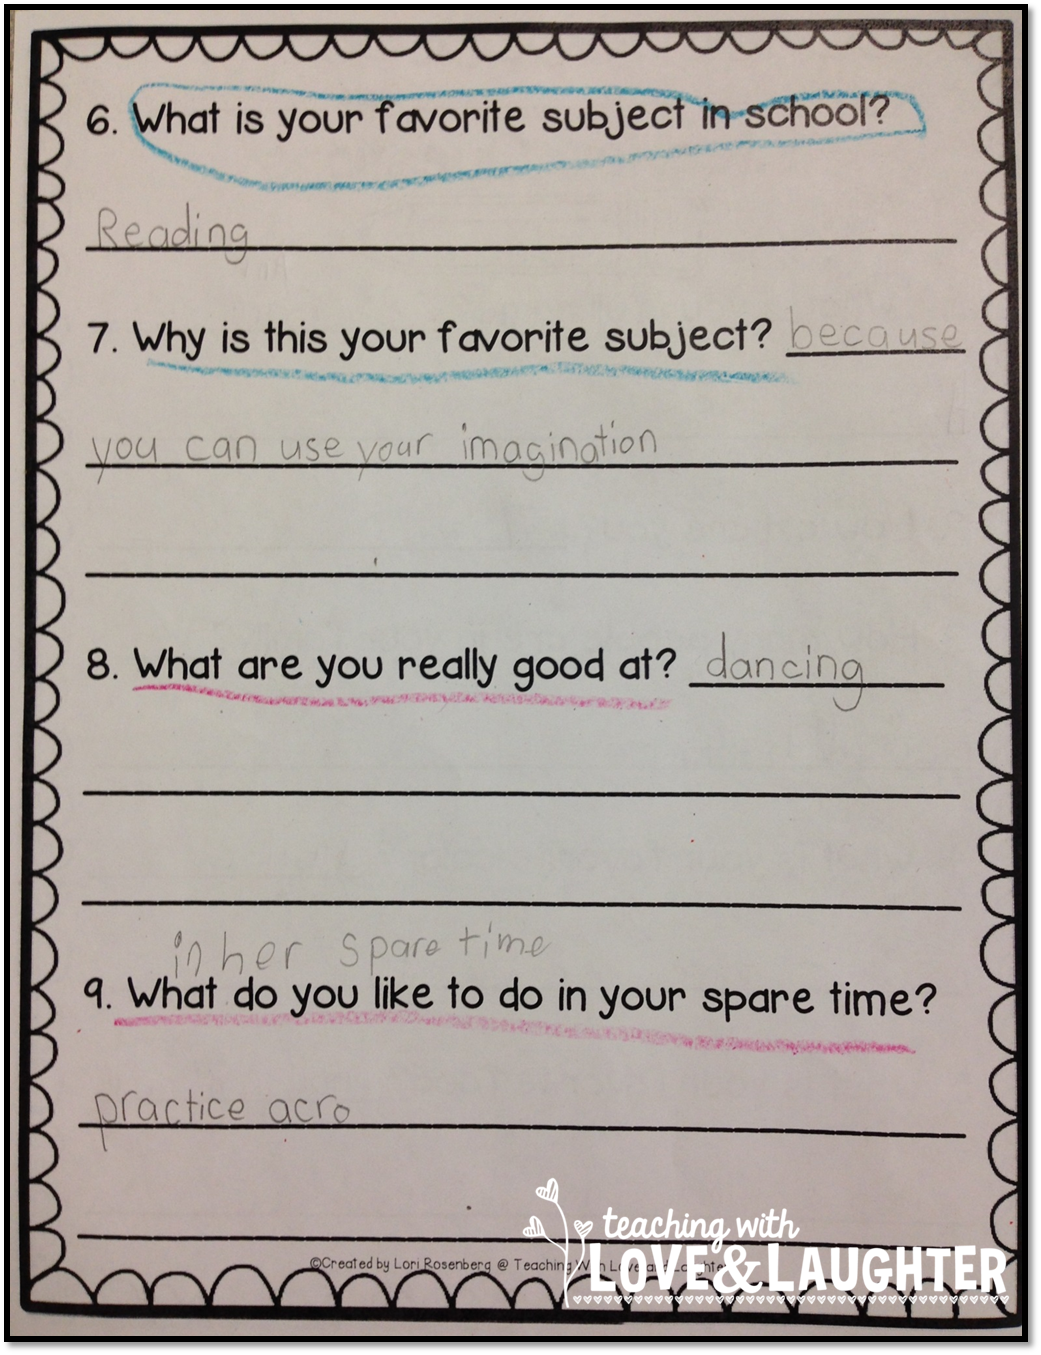 teaching love and laughter first grade interviews then they ask each other questions and record their answers